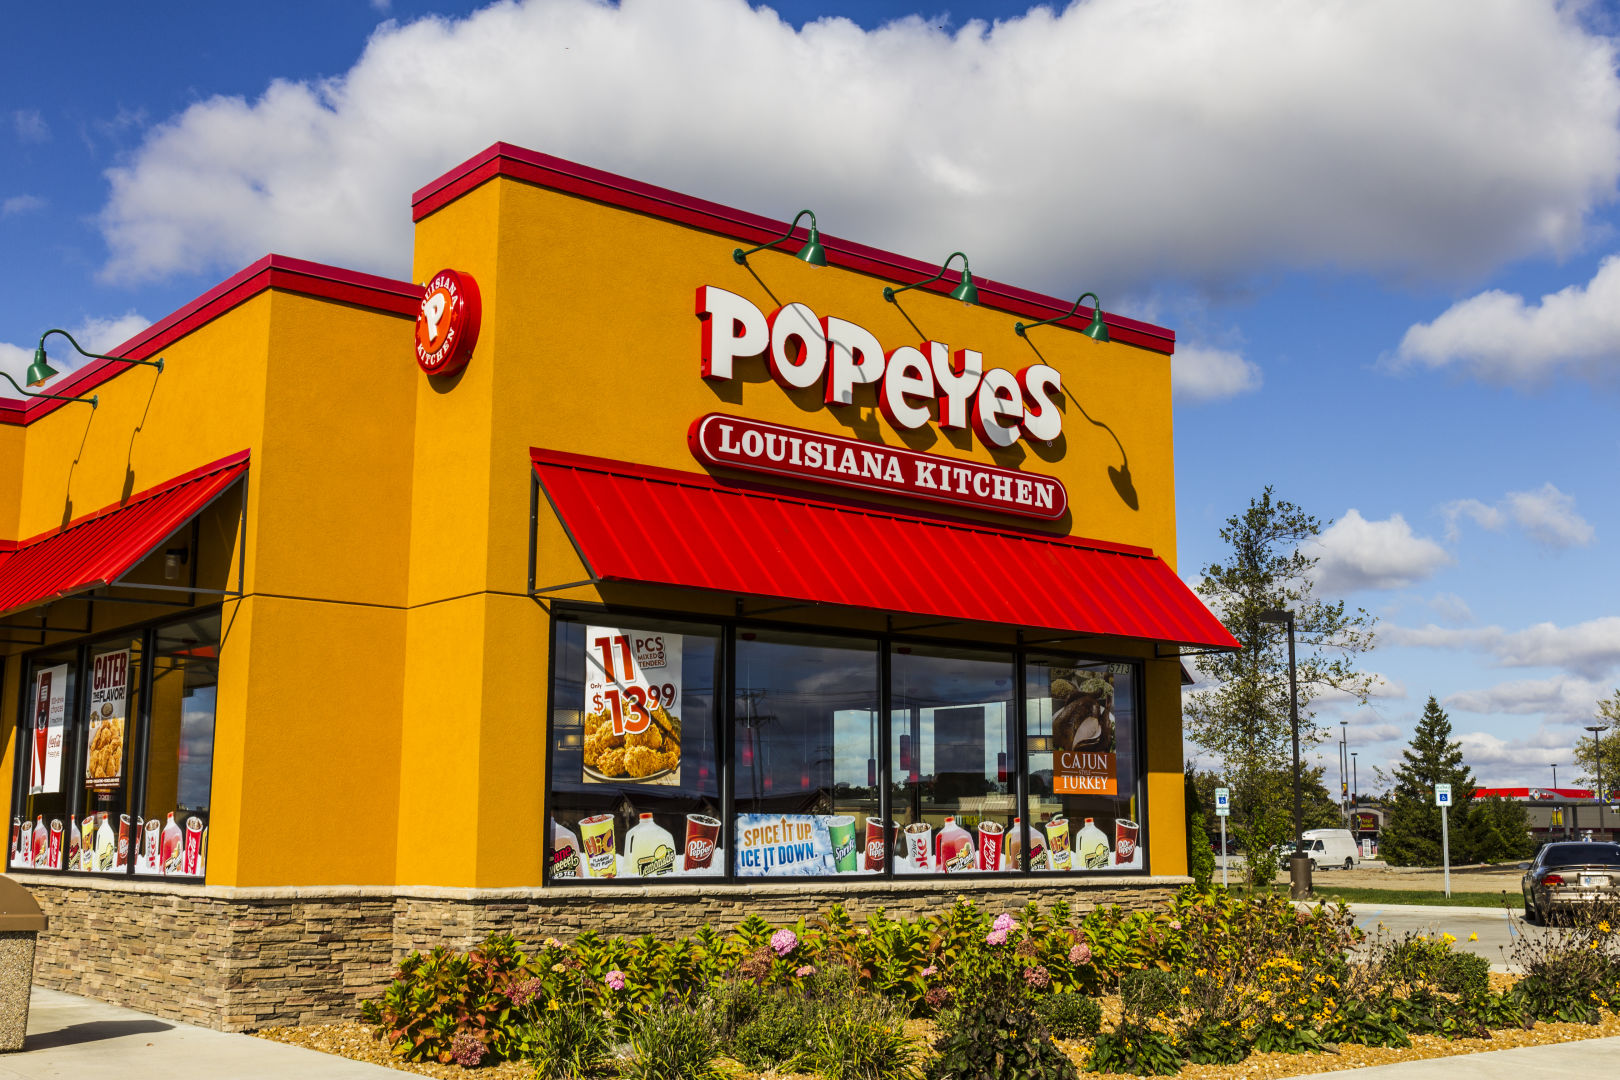 Chick-Fil-A's Sandwich War vs. Popeyes: A Mistake Or A Strategy?